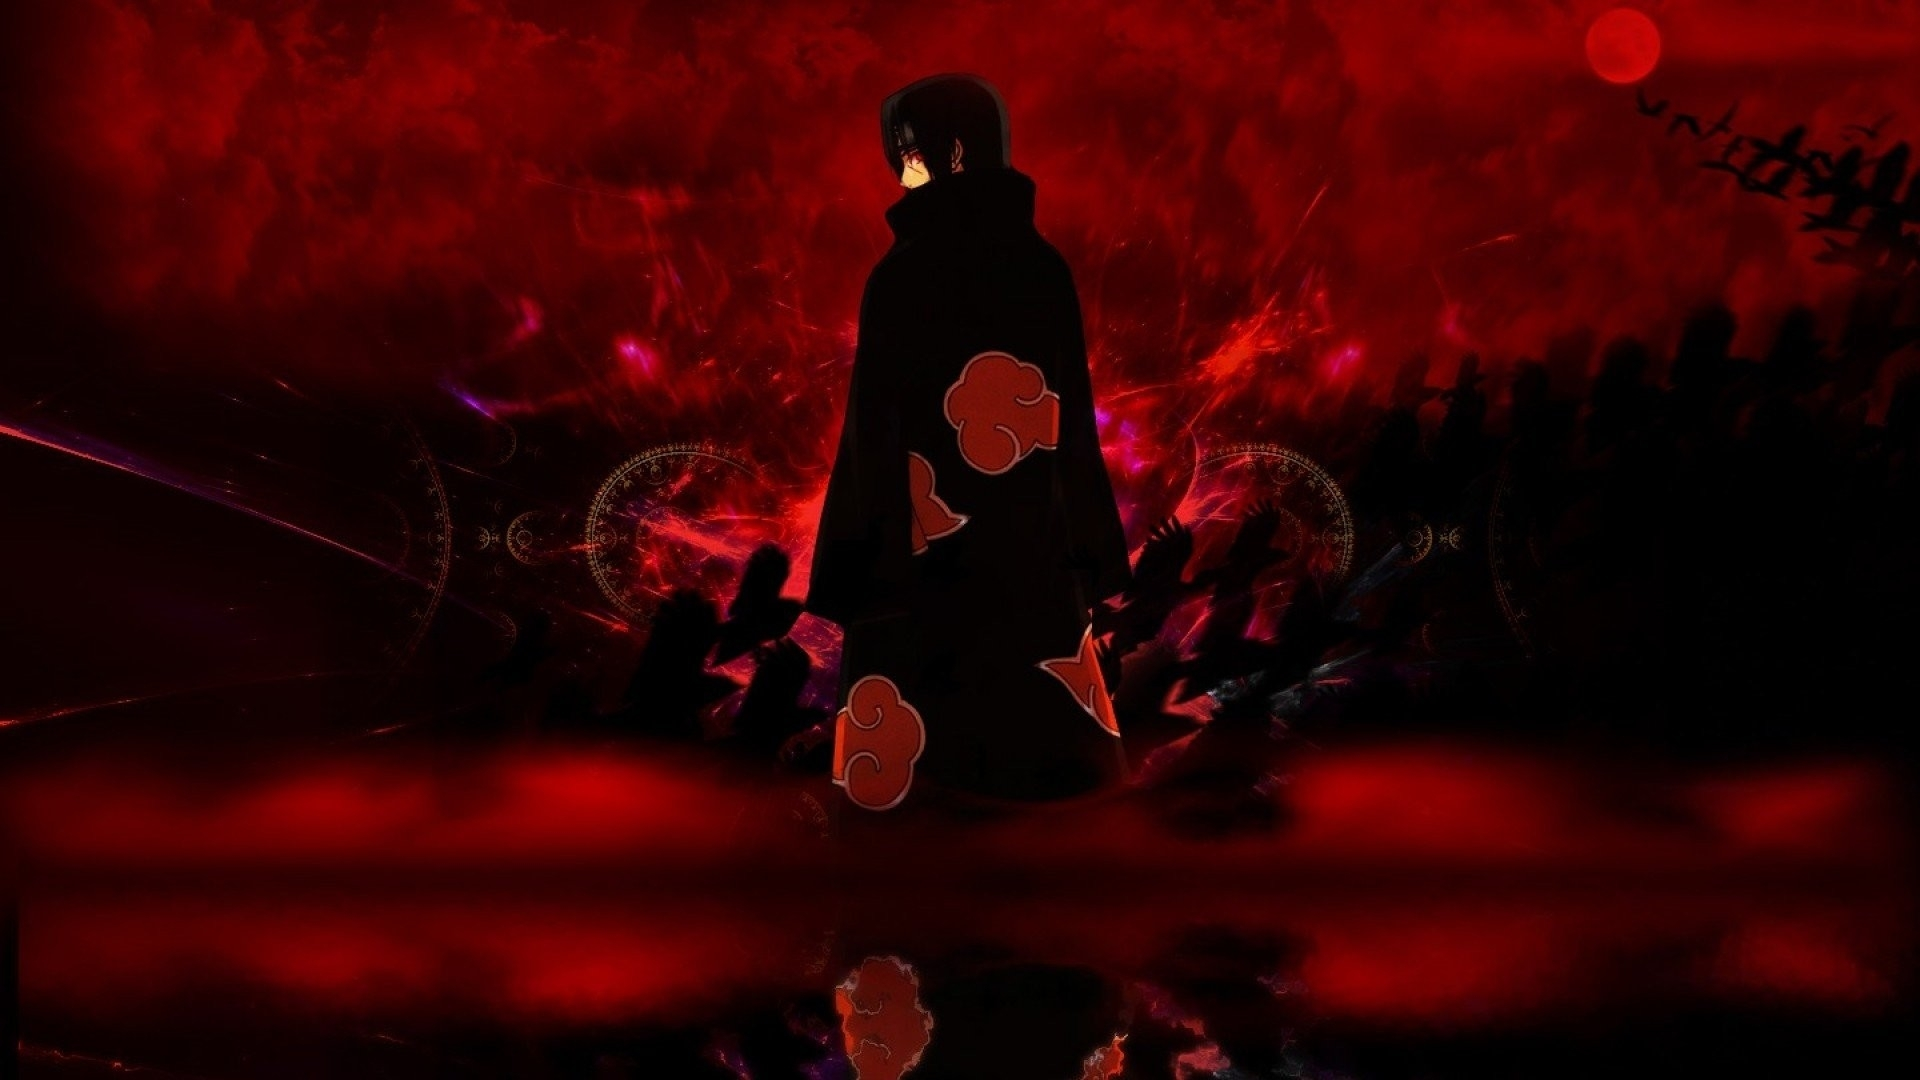 itachi uchiha wallpaper ·① download free awesome backgrounds for